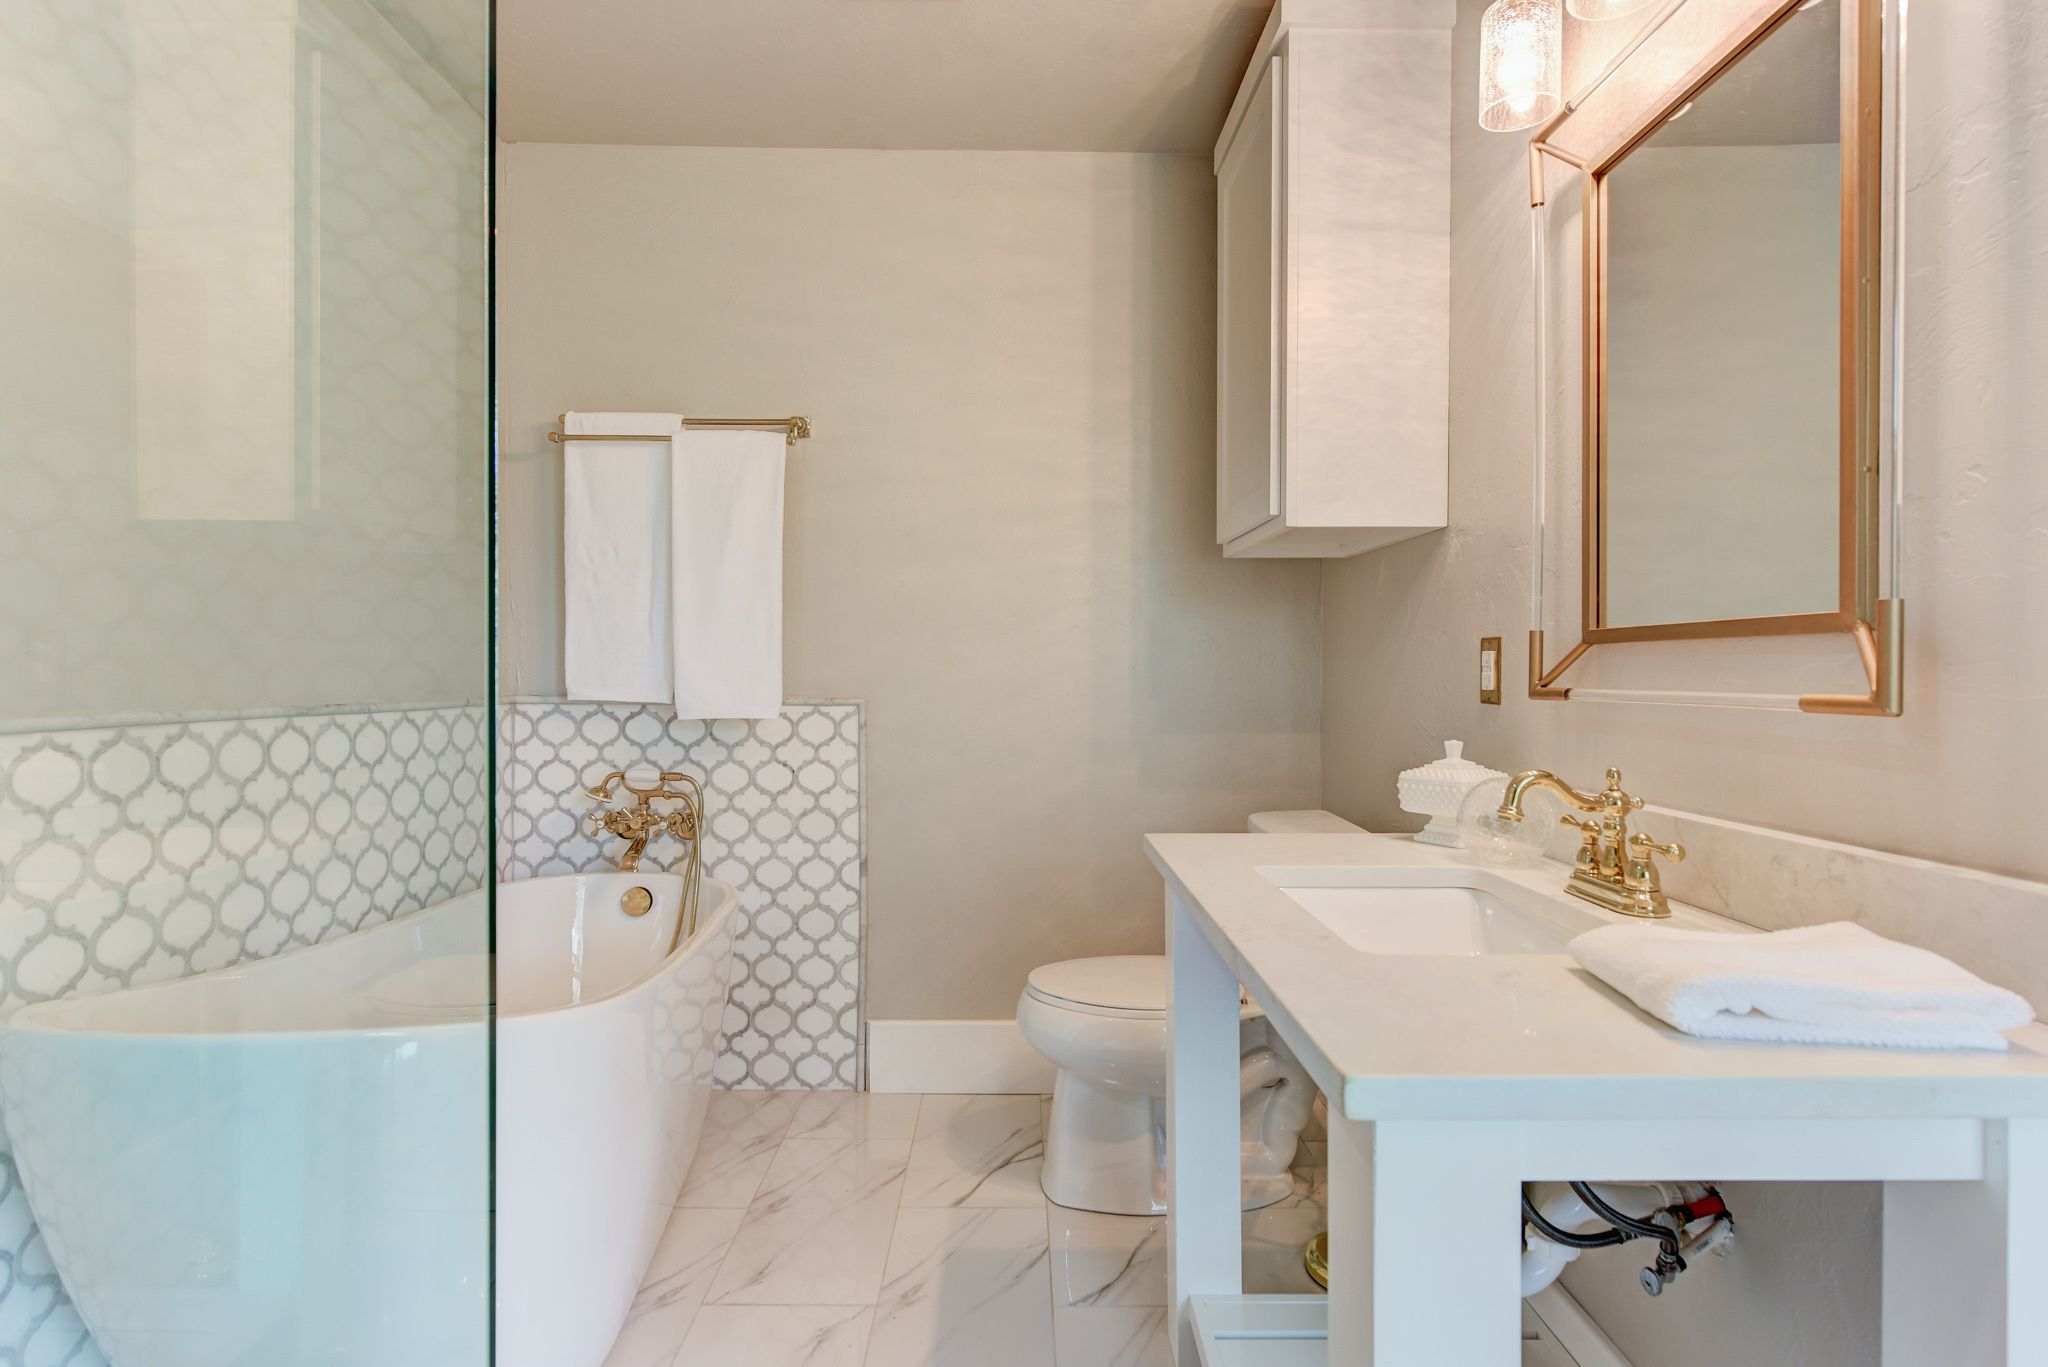 White Thassos And Bianco Carrara Marble Waterjet Mosaic Tile In Arabesque Marrakech Video Video Bathroom Wall Tile Bathrooms Remodel Tile Bathroom